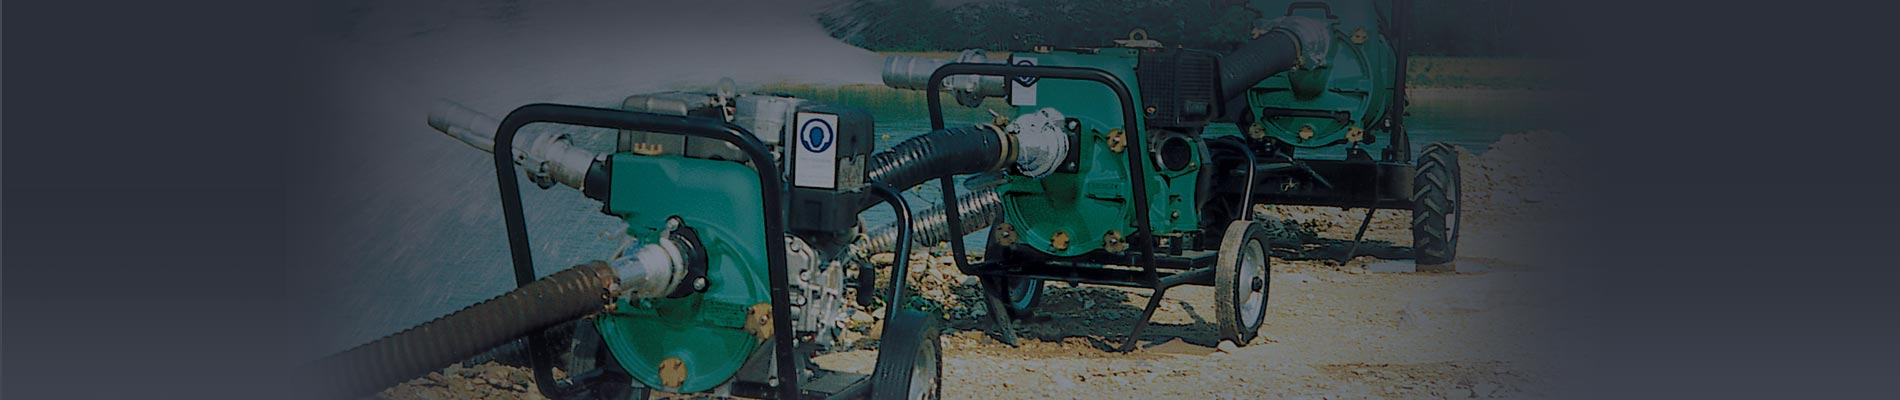 Caffini Pumps - Diaphragm pumps and self-priming centrifugal